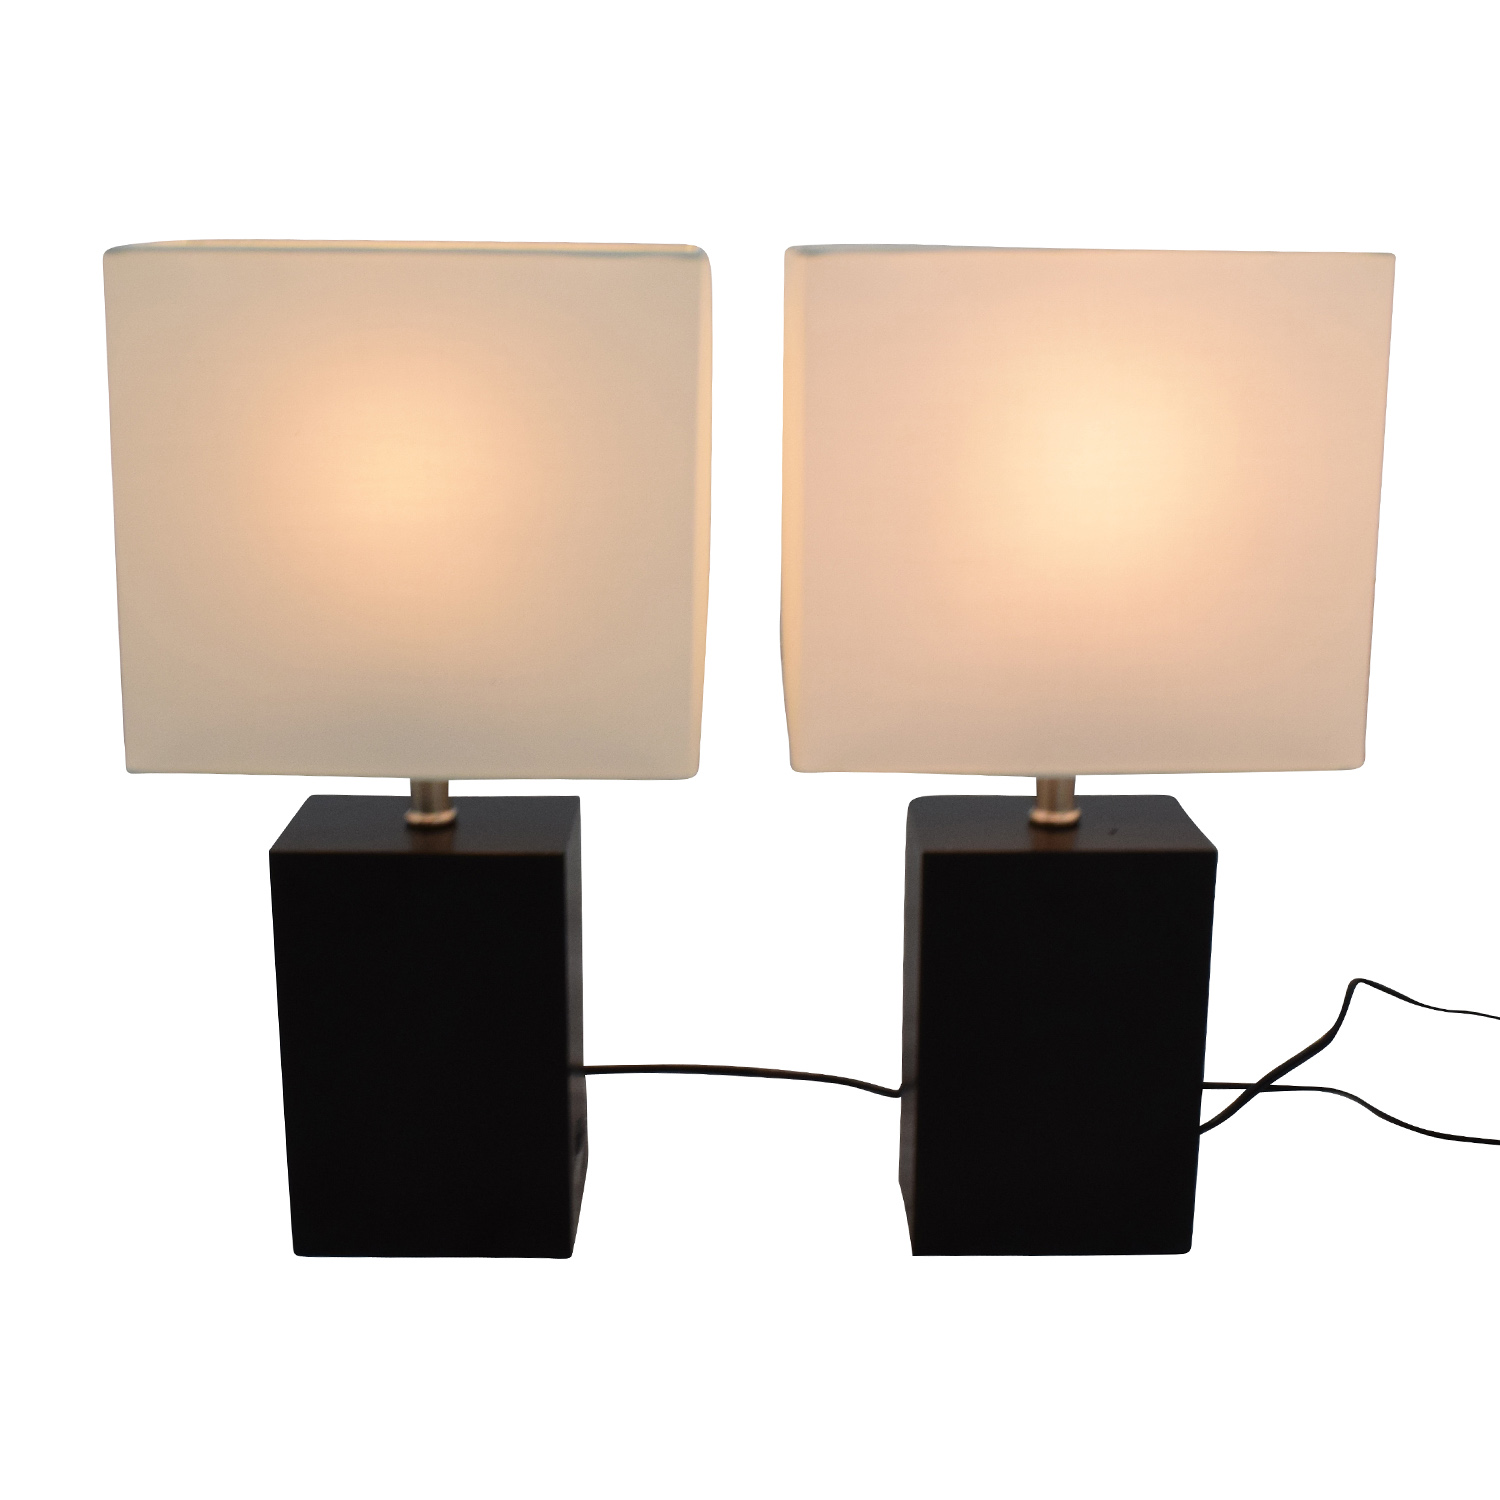 Brightech Brightech Black Wood LED Table Lamps Black